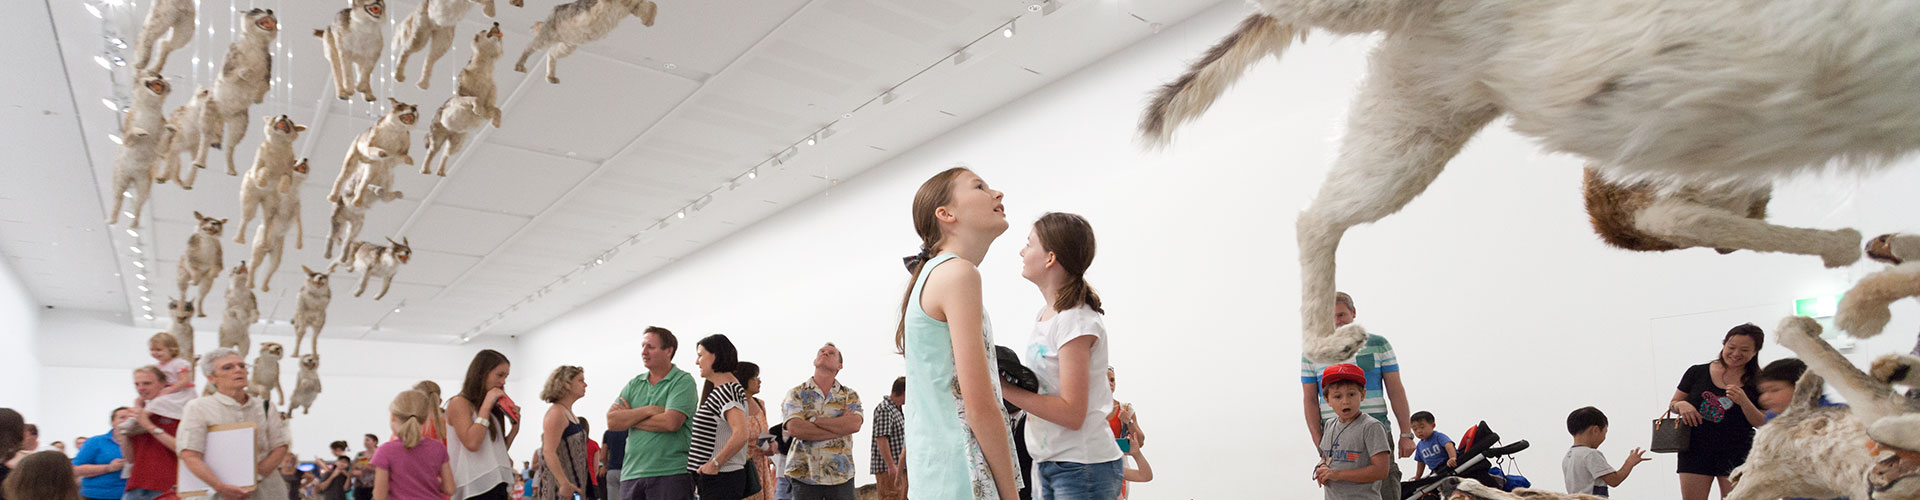 Cai Guo-Qiang's <em>Head On</em> was one of three spectacular installation works on display in 'Falling back to Earth' in 2013.